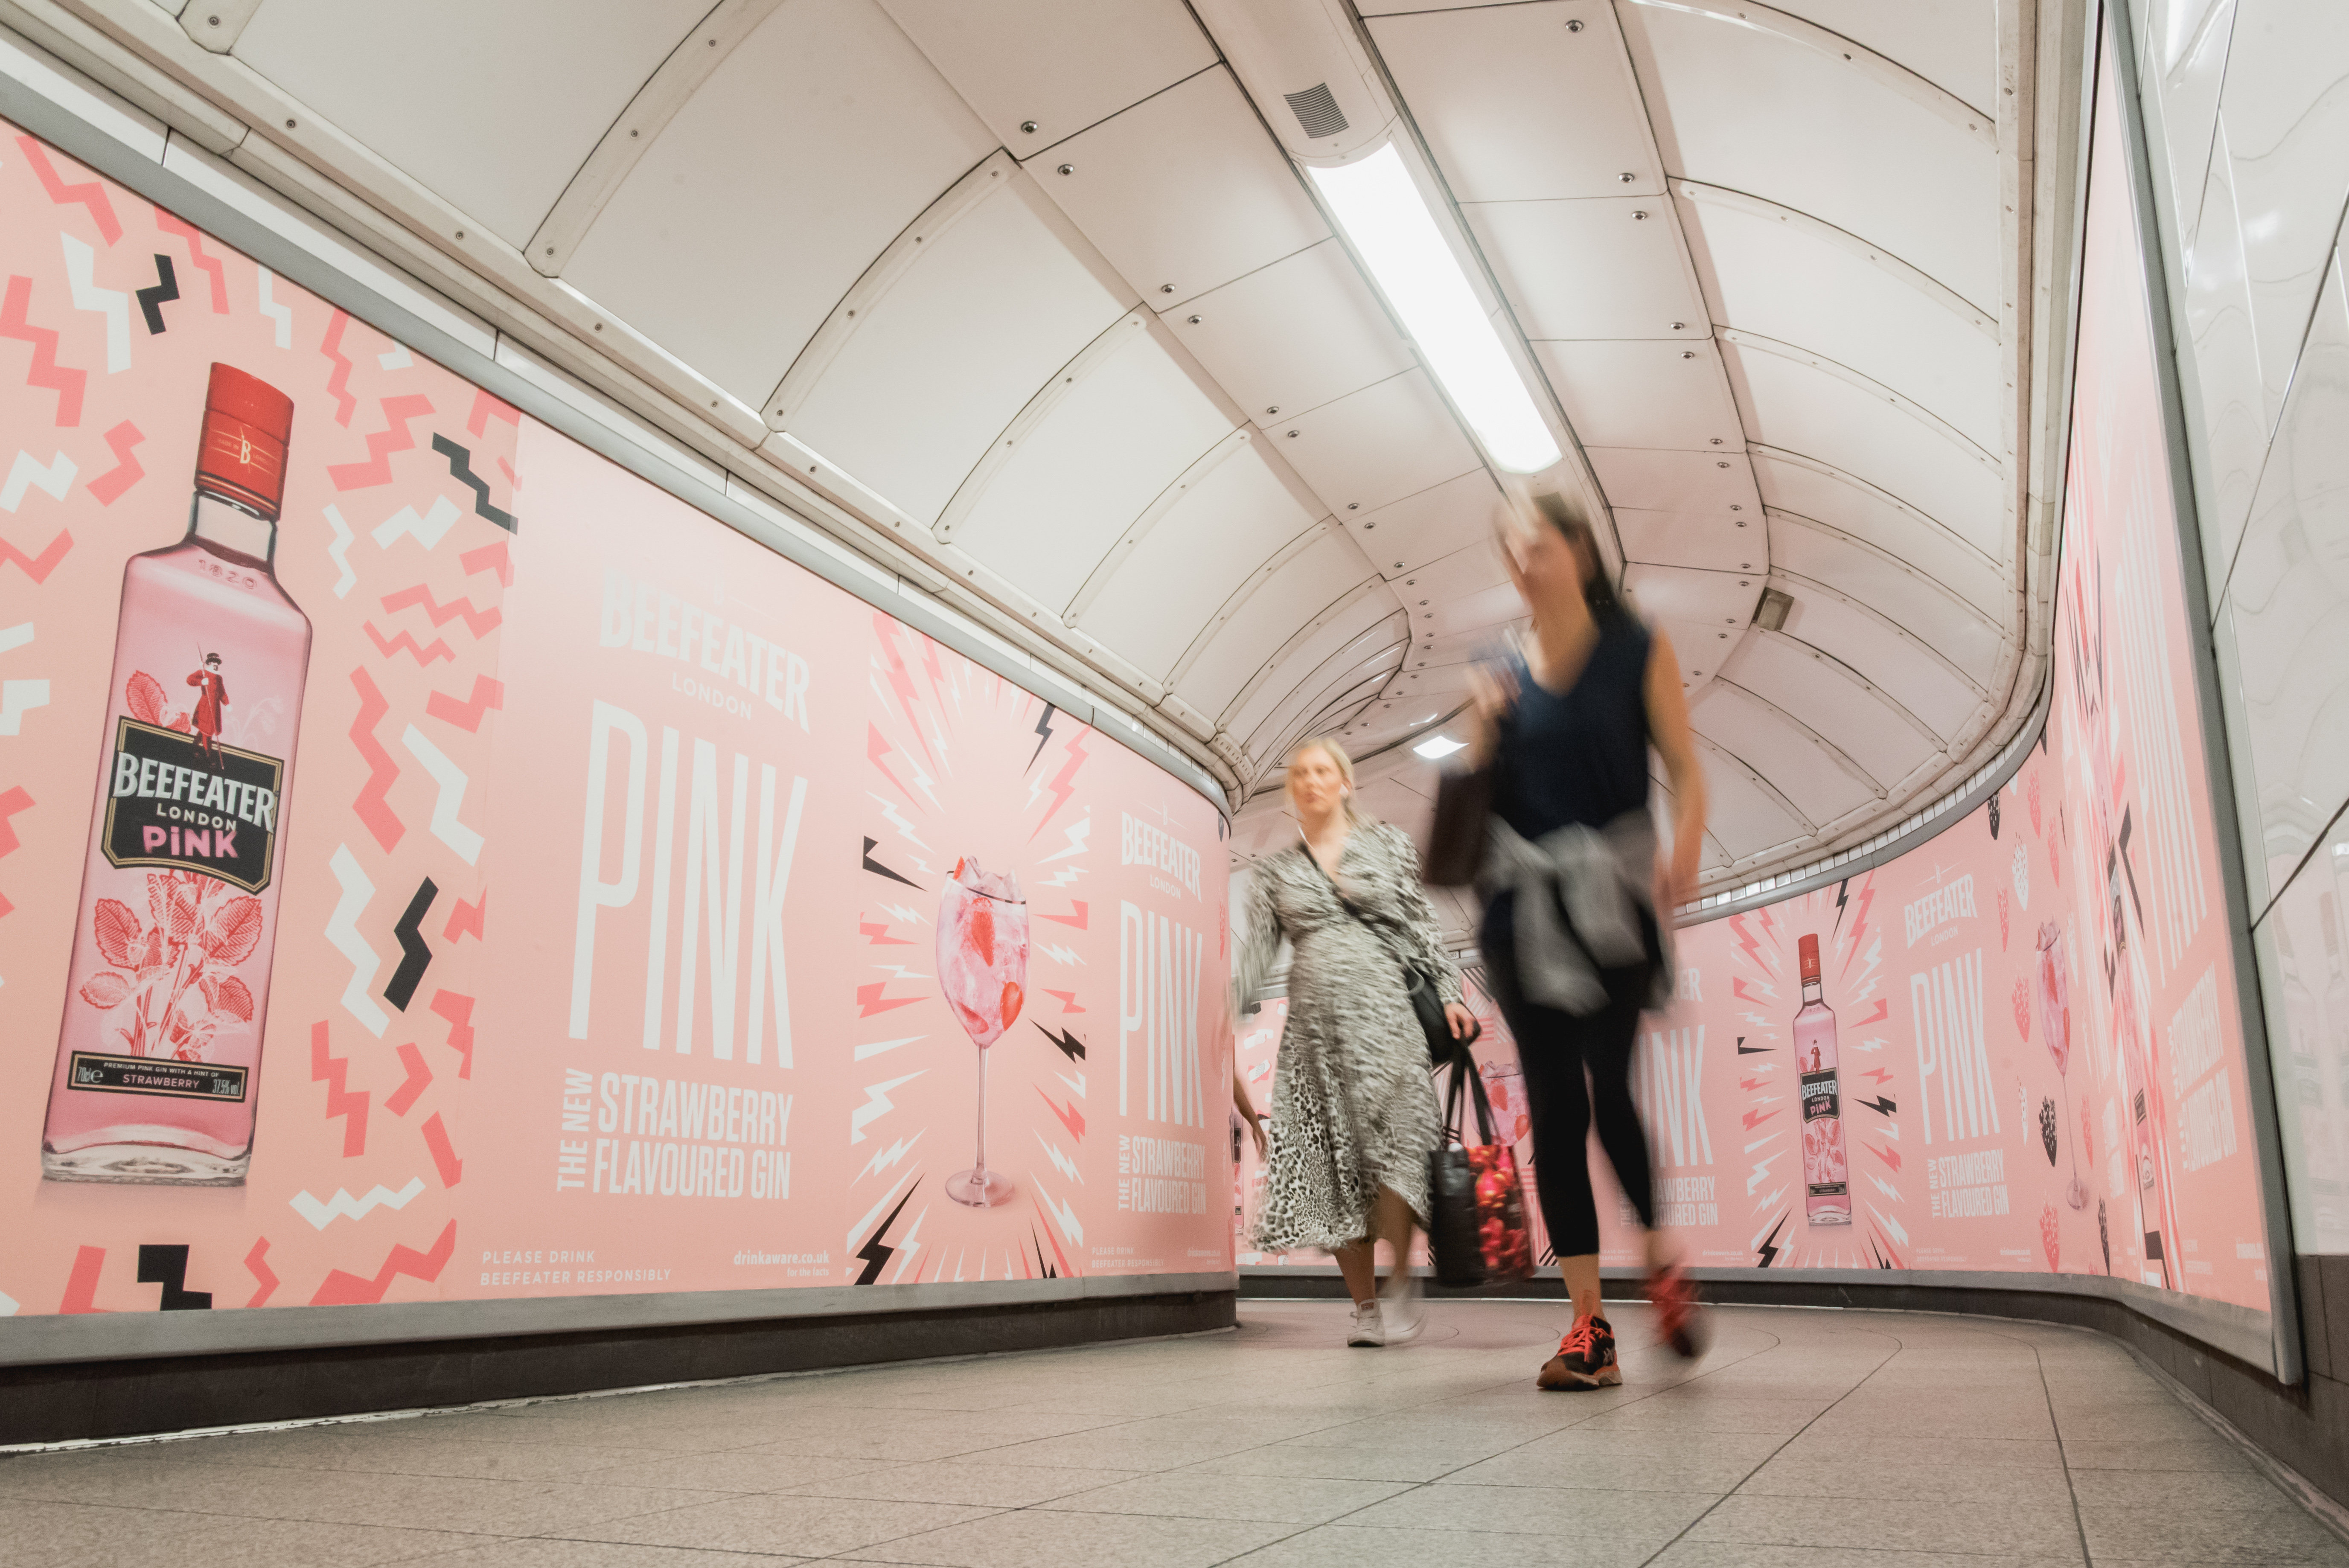 Pernod Ricard UK Releases Scented OOH London Underground Campaign to Launch Beefeater Pink